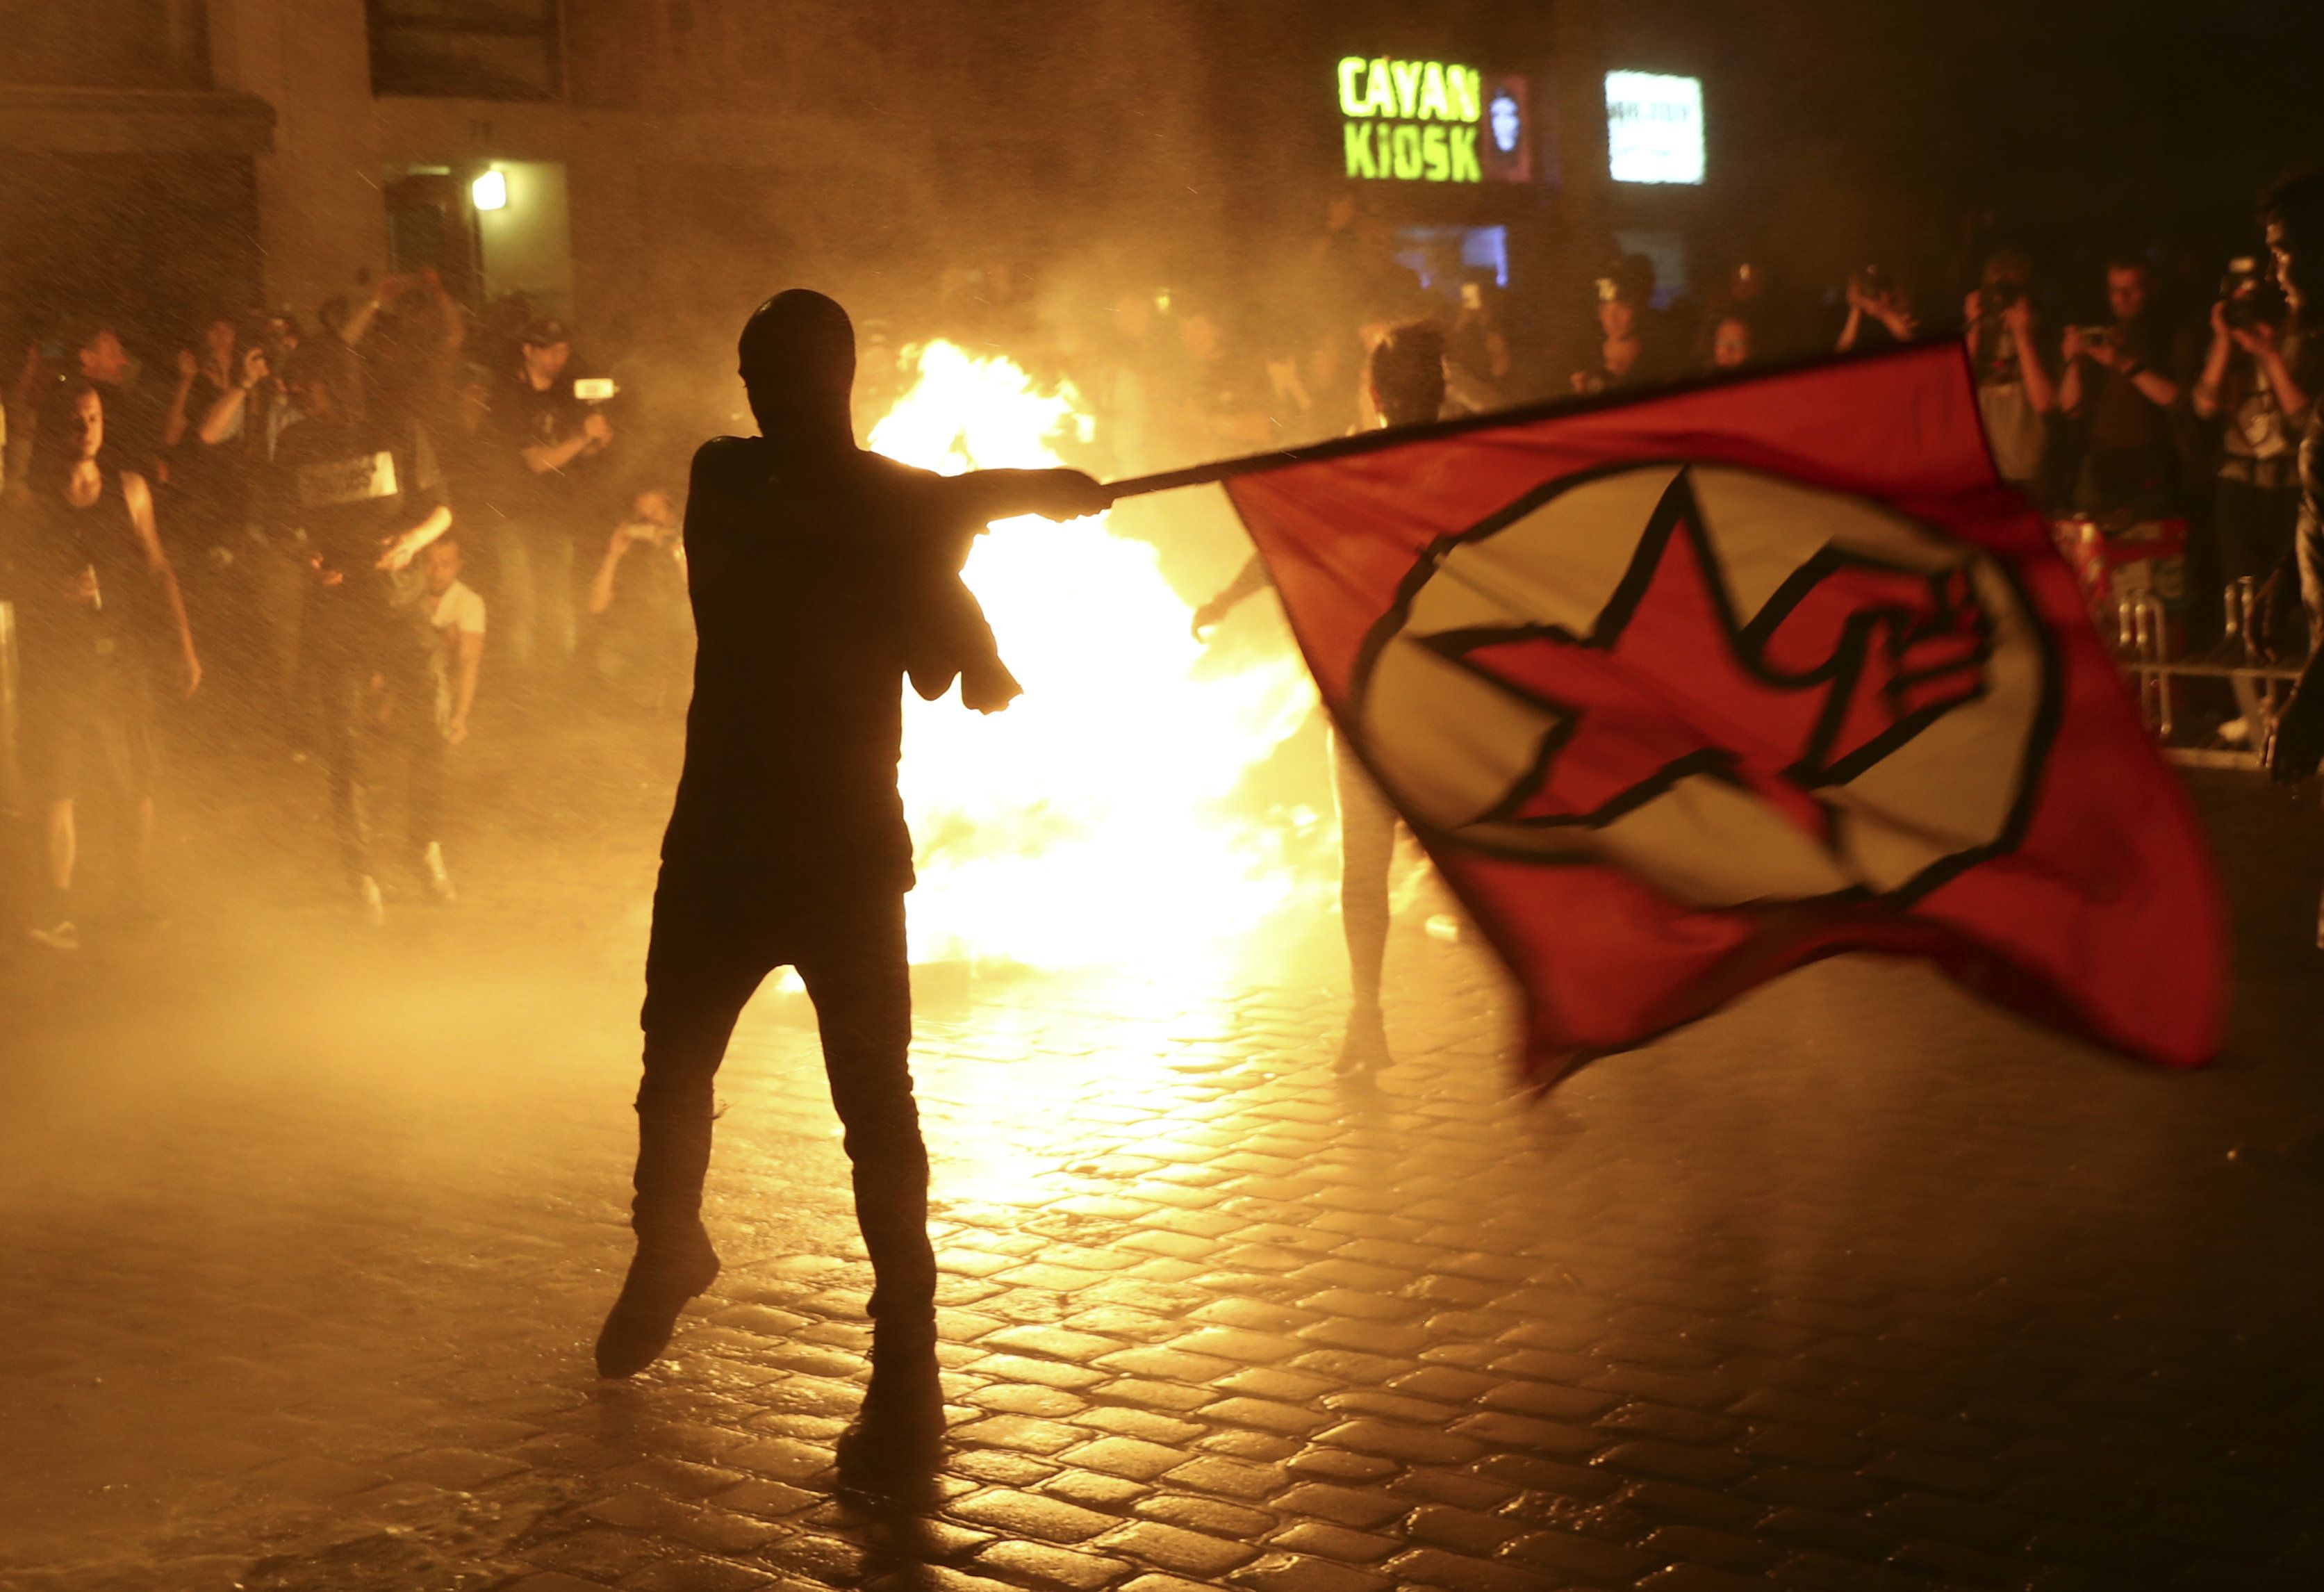 An anti-G20 protestor waves a flag in front of a burning